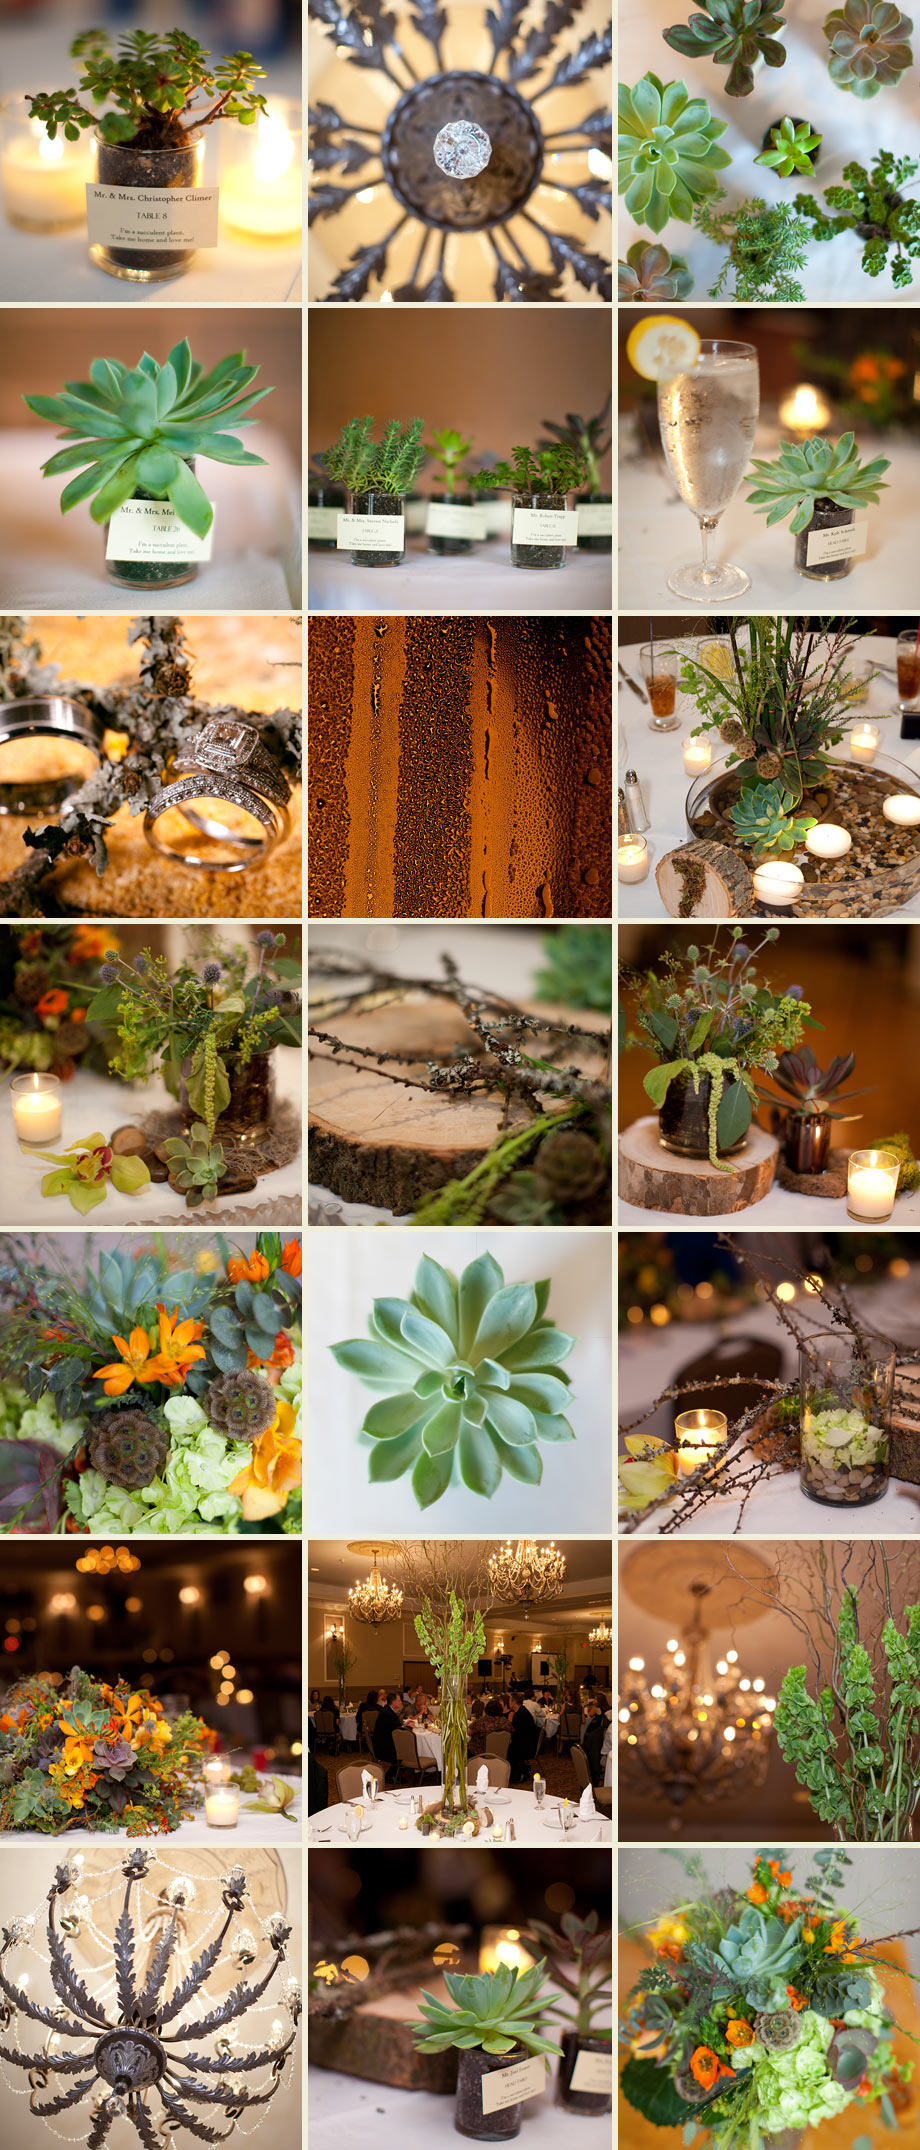 wood plants green centerpieces rustic earthy photos